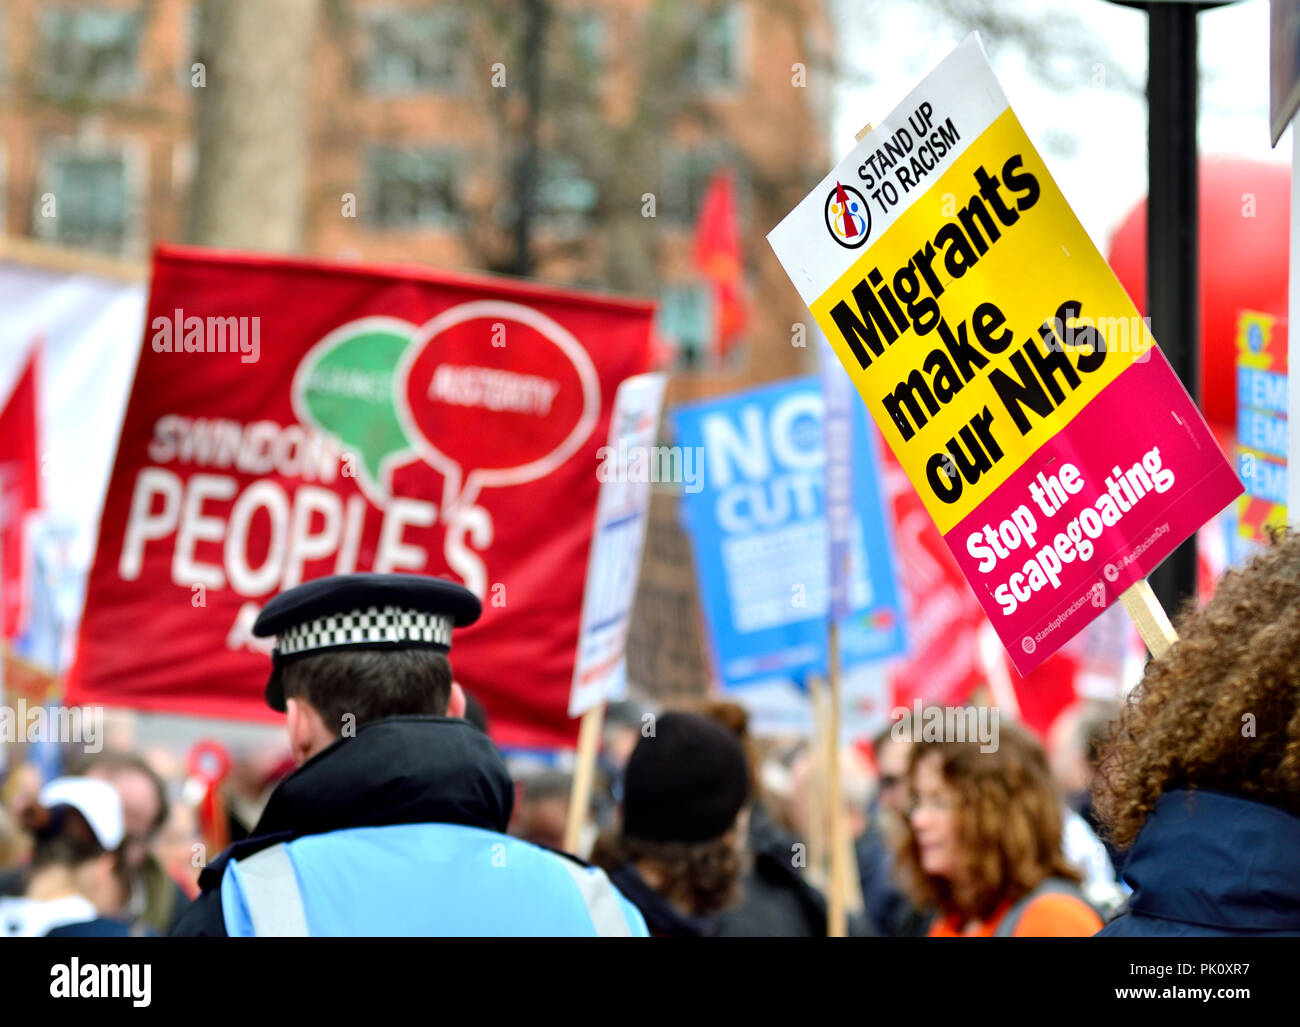 Pro-NHS demonstration, March 2017. London, England, UK. - Stock Image